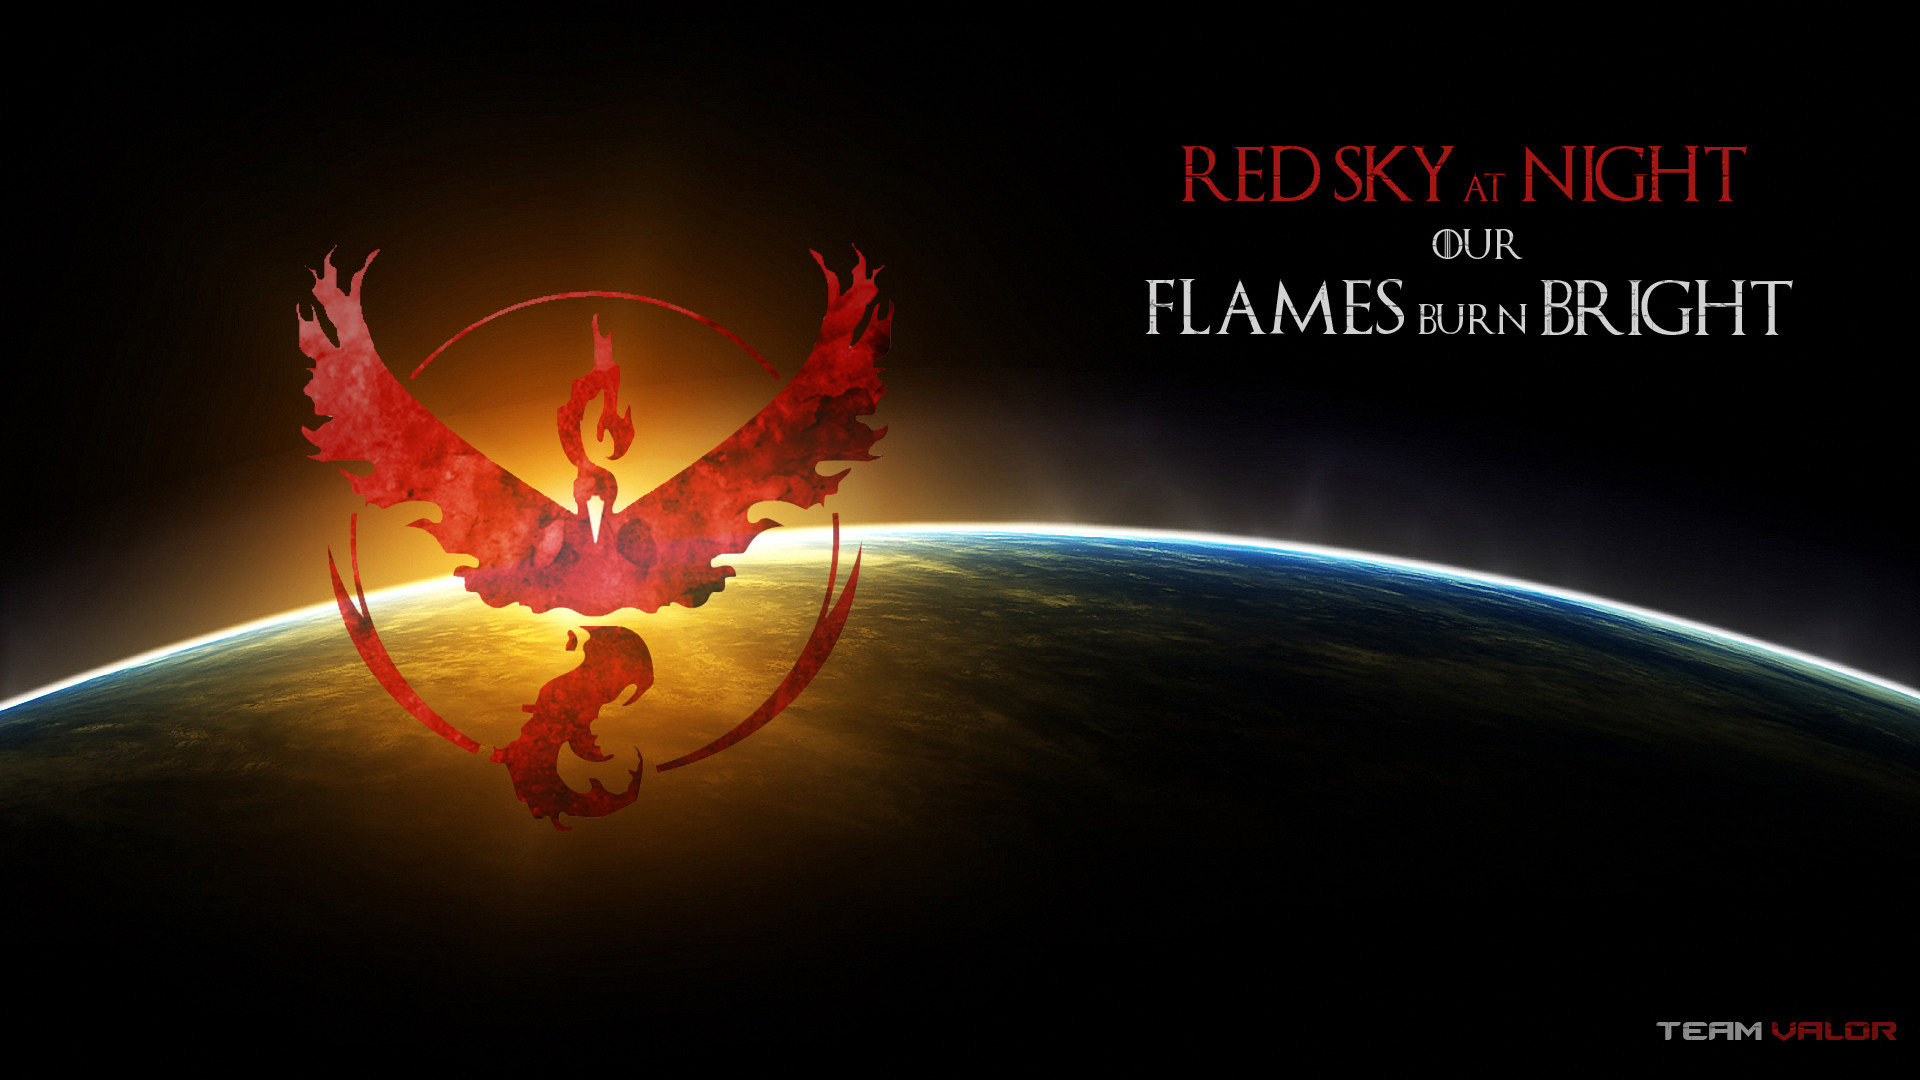 Red Sky at Night our flames burn bright – Team Valor PC wallpaper